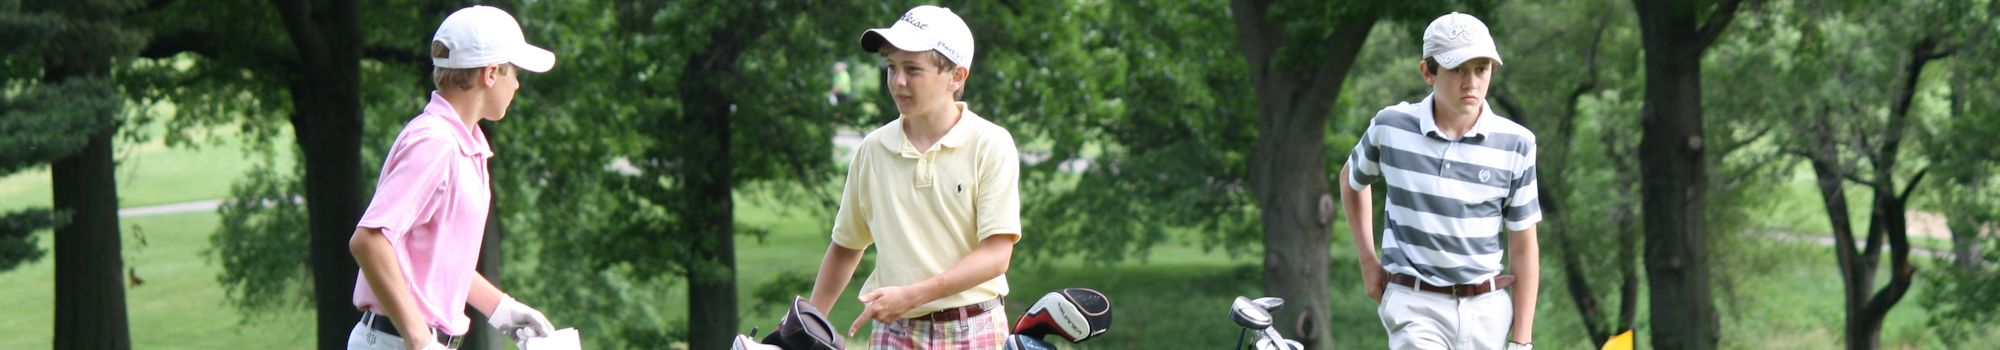 junior-golf-stl1